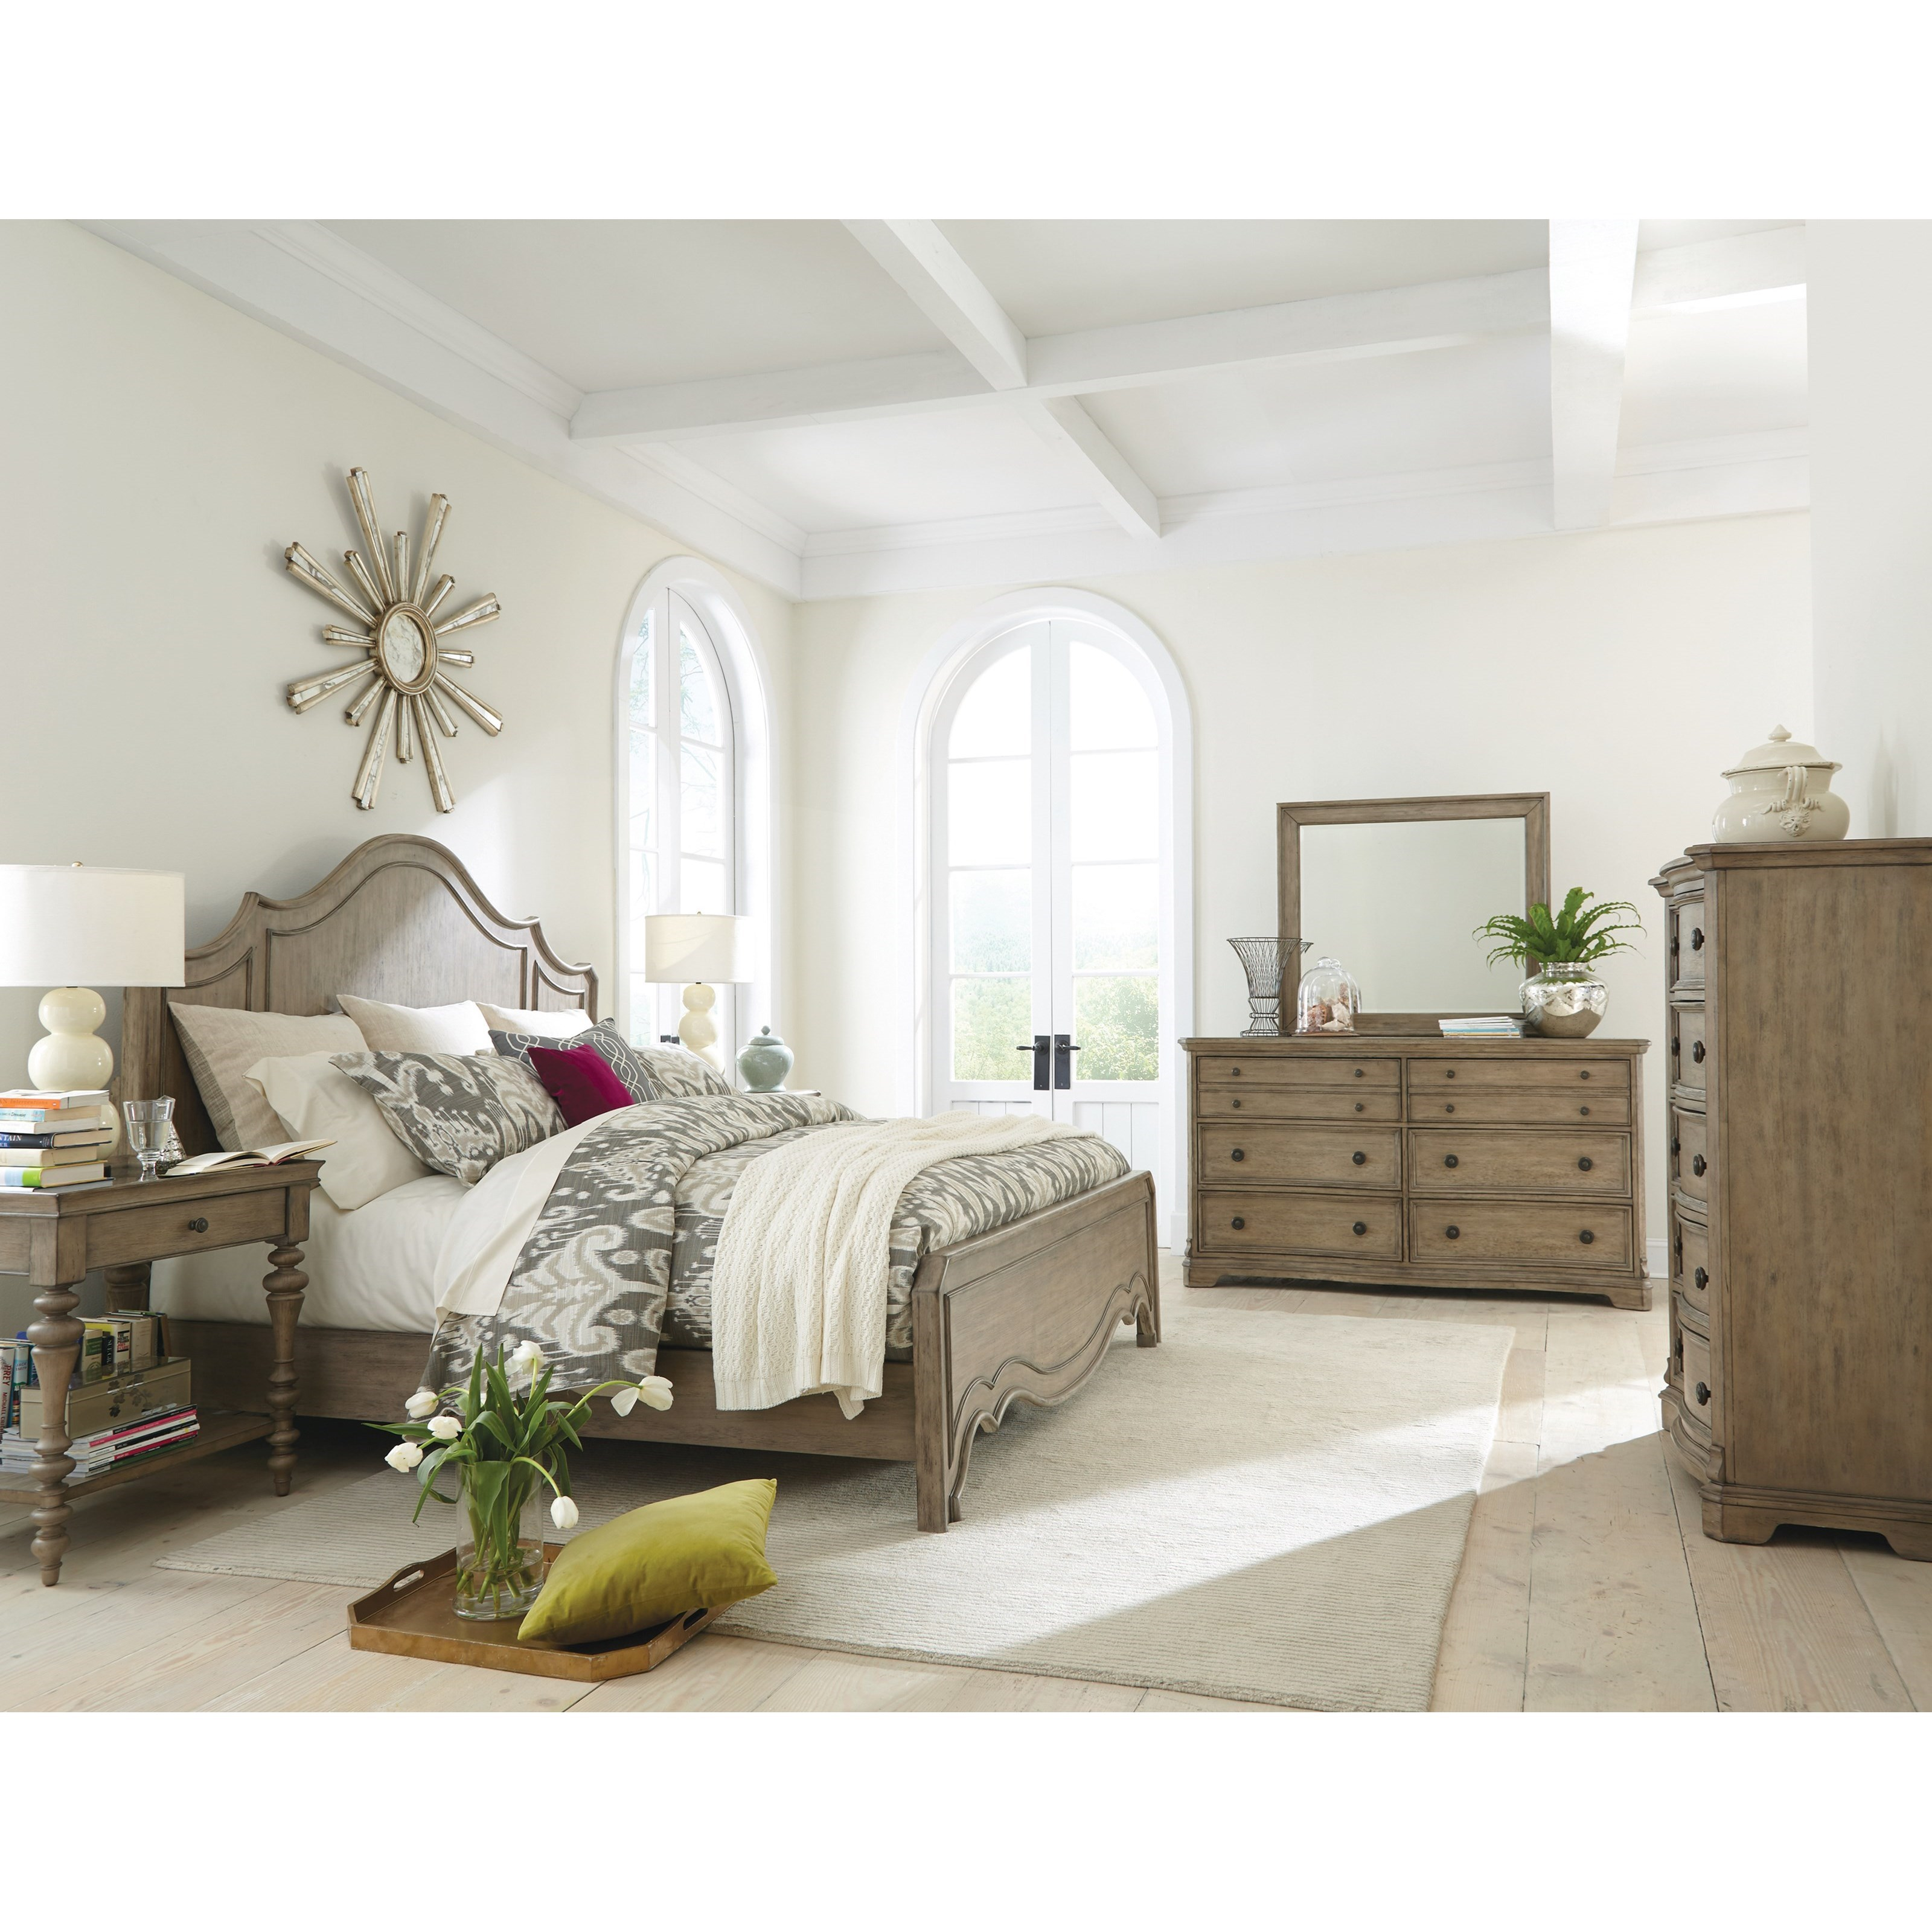 leg gallery riverside bedroom furniture stores by mirabelle home nightstand notify me